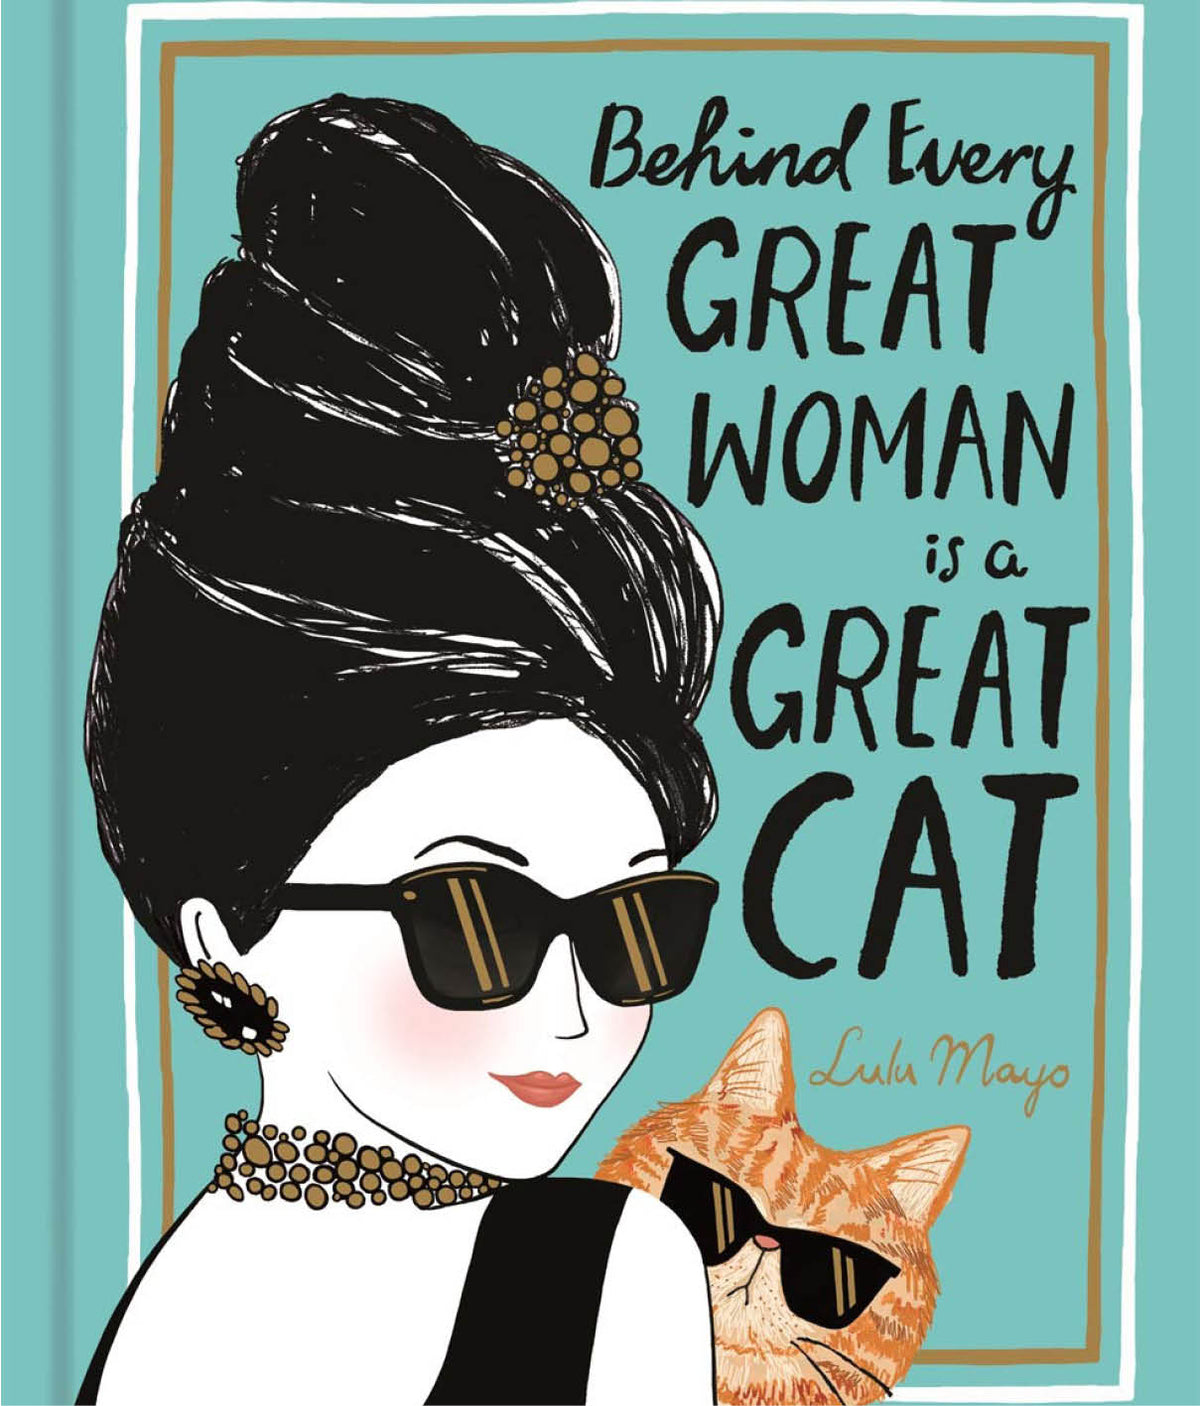 Behind Every Great Woman is a Great Cat by Lulu Mayo and Justine Solomons-Moat